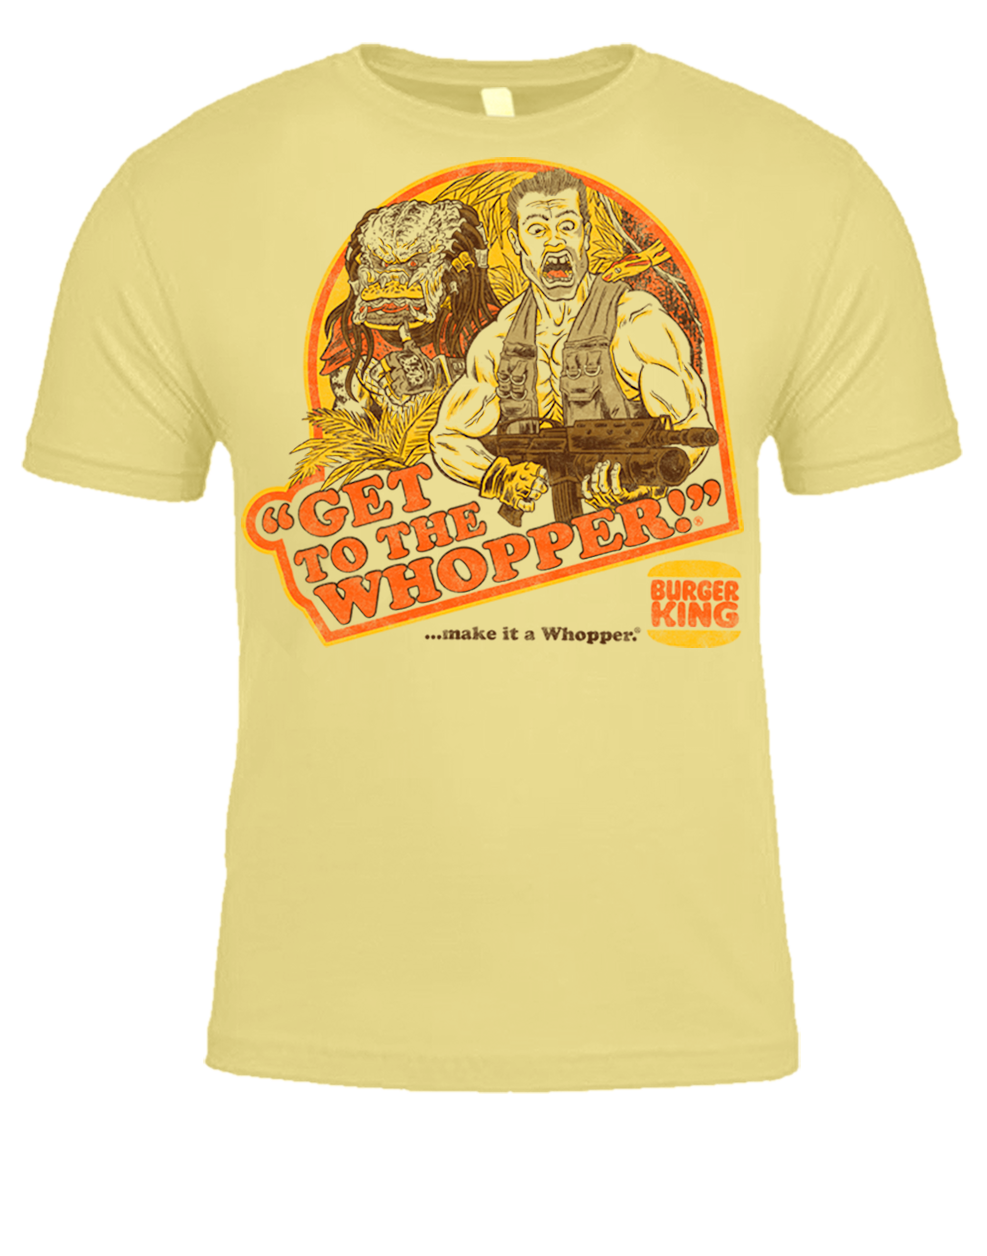 Get to the Whopper! T-Shirt